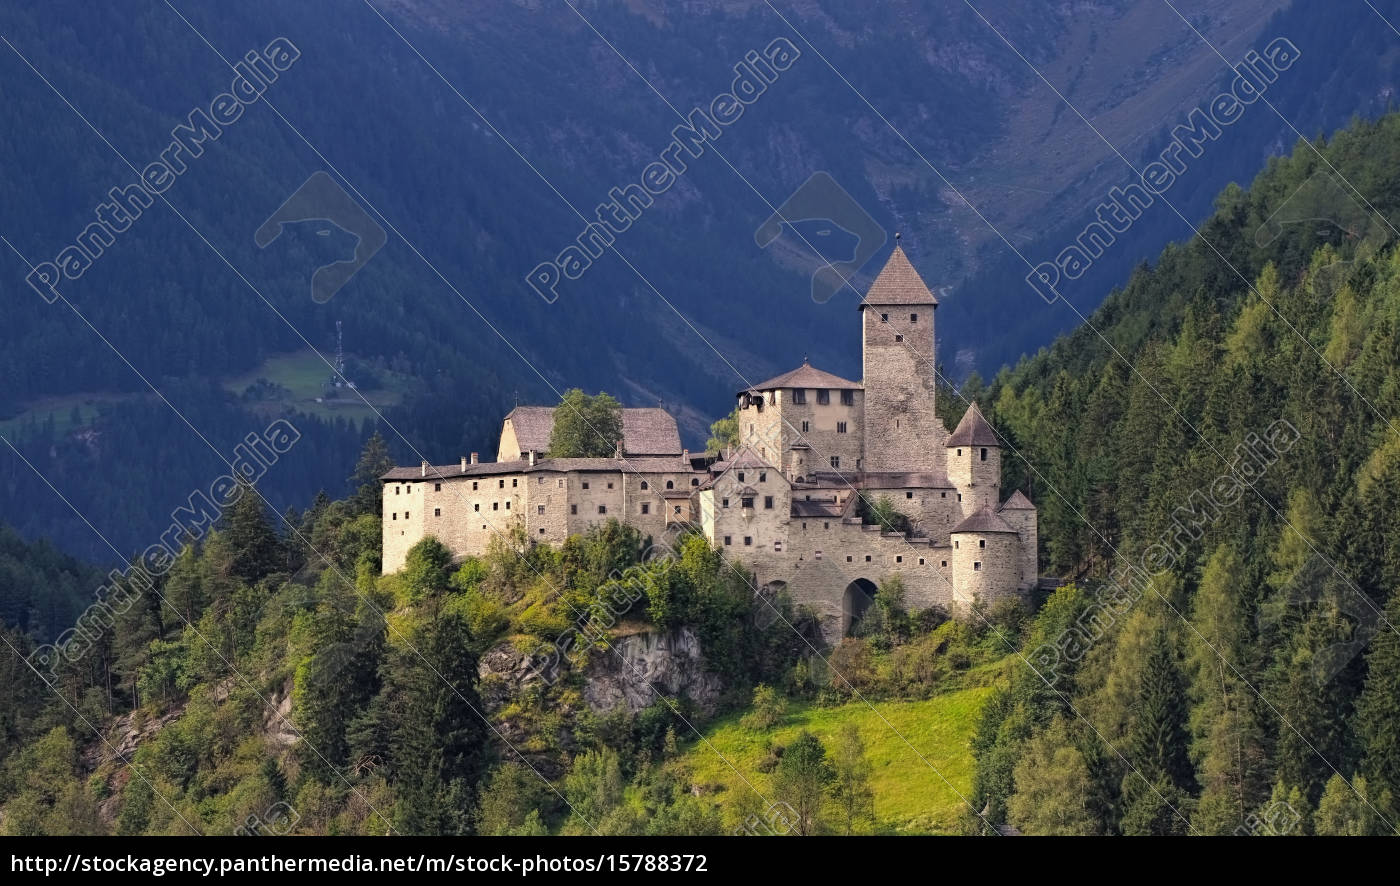 sand, in, taufers, castle, -, sand - 15788372